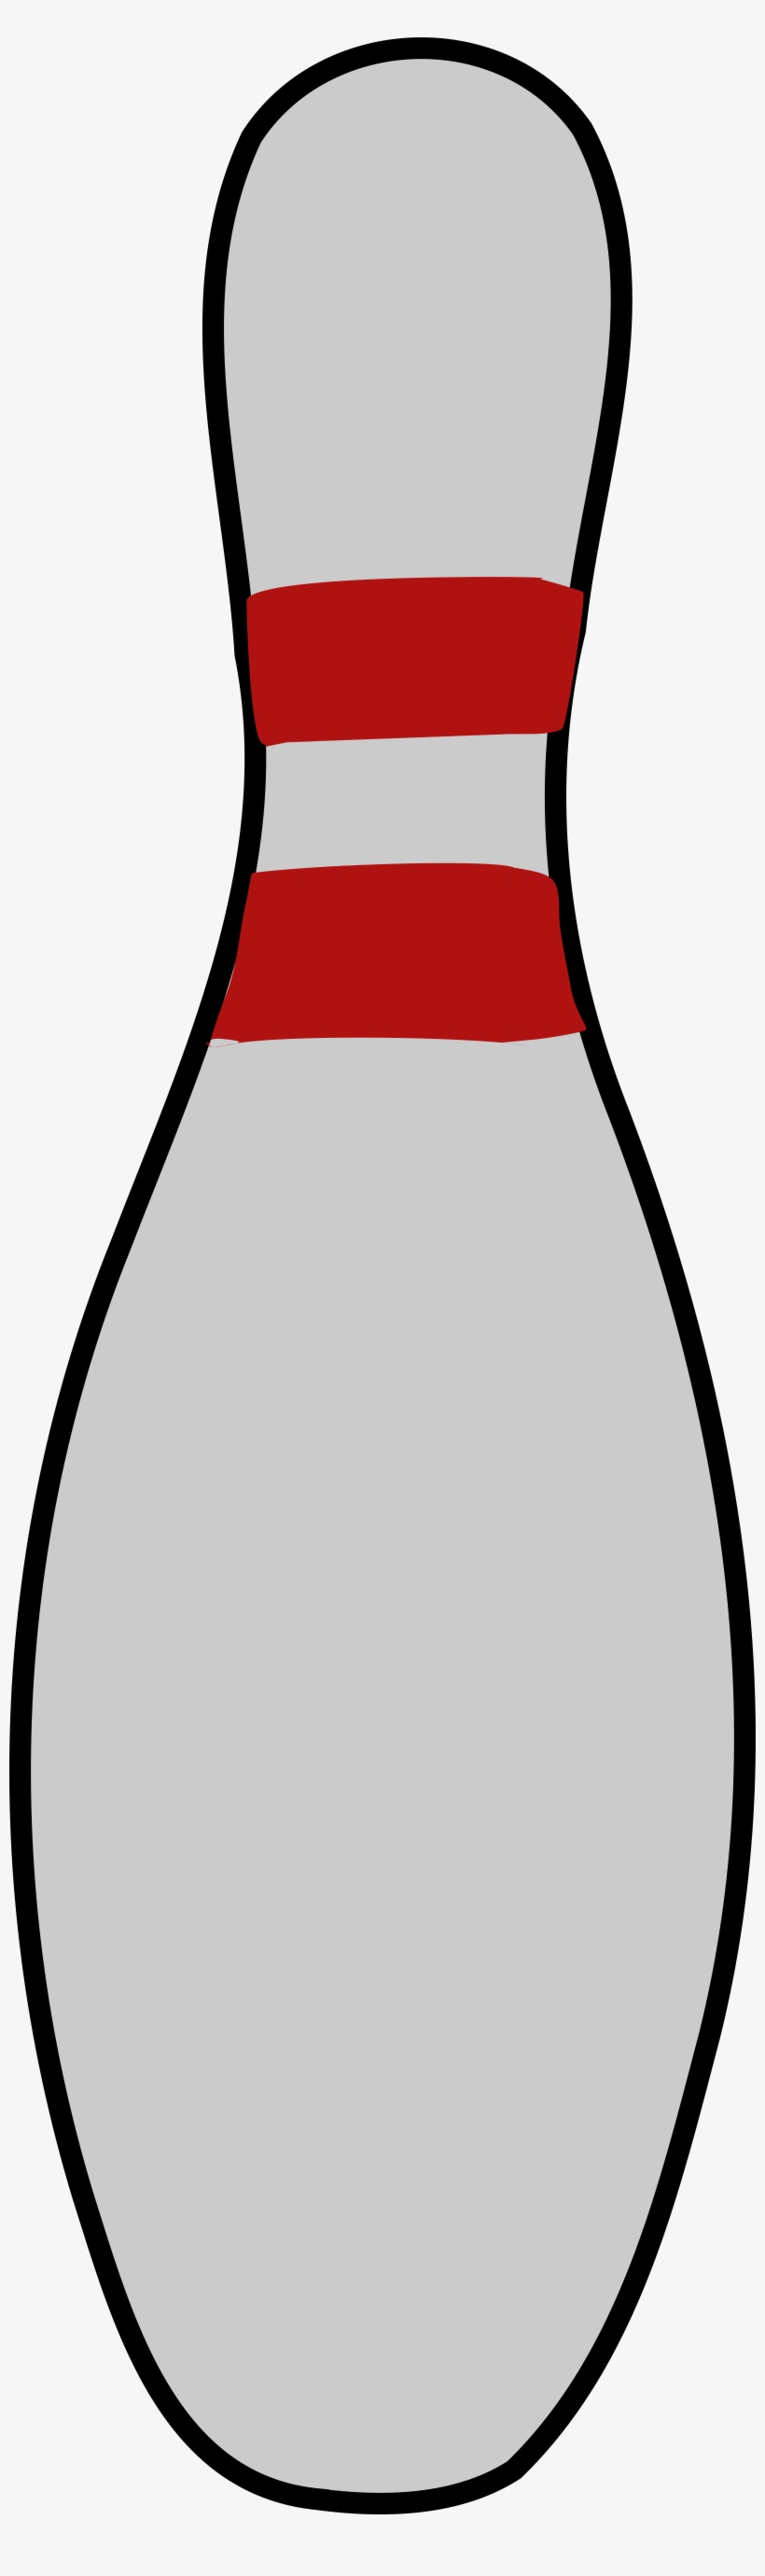 Single Clipart Bowling Pin.